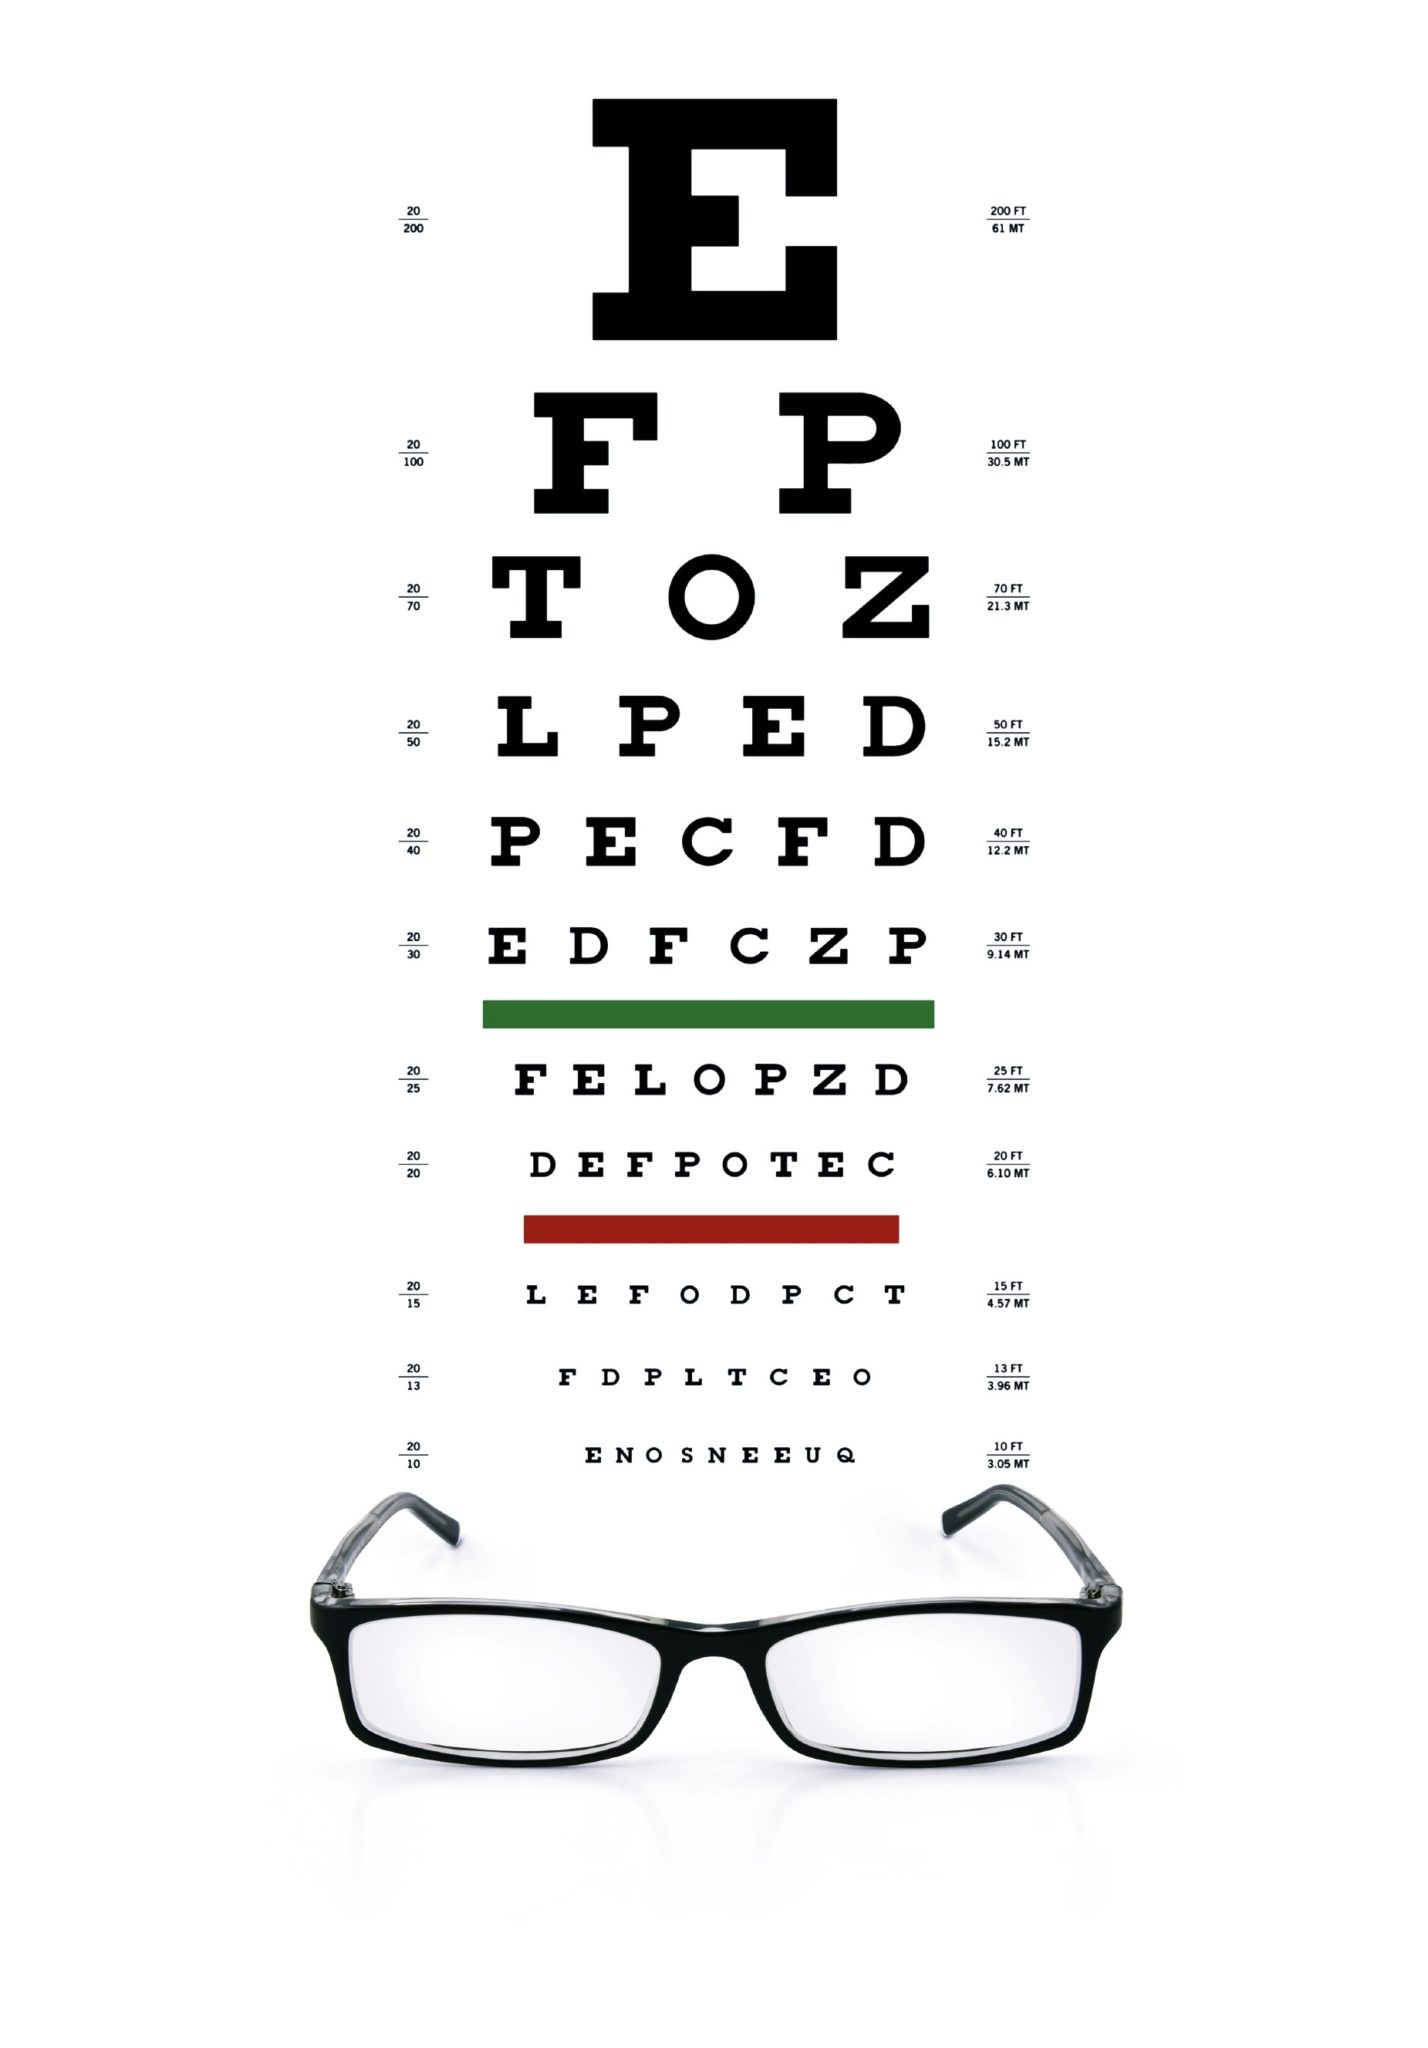 Vision Test: Check How Good Your Eyes Are